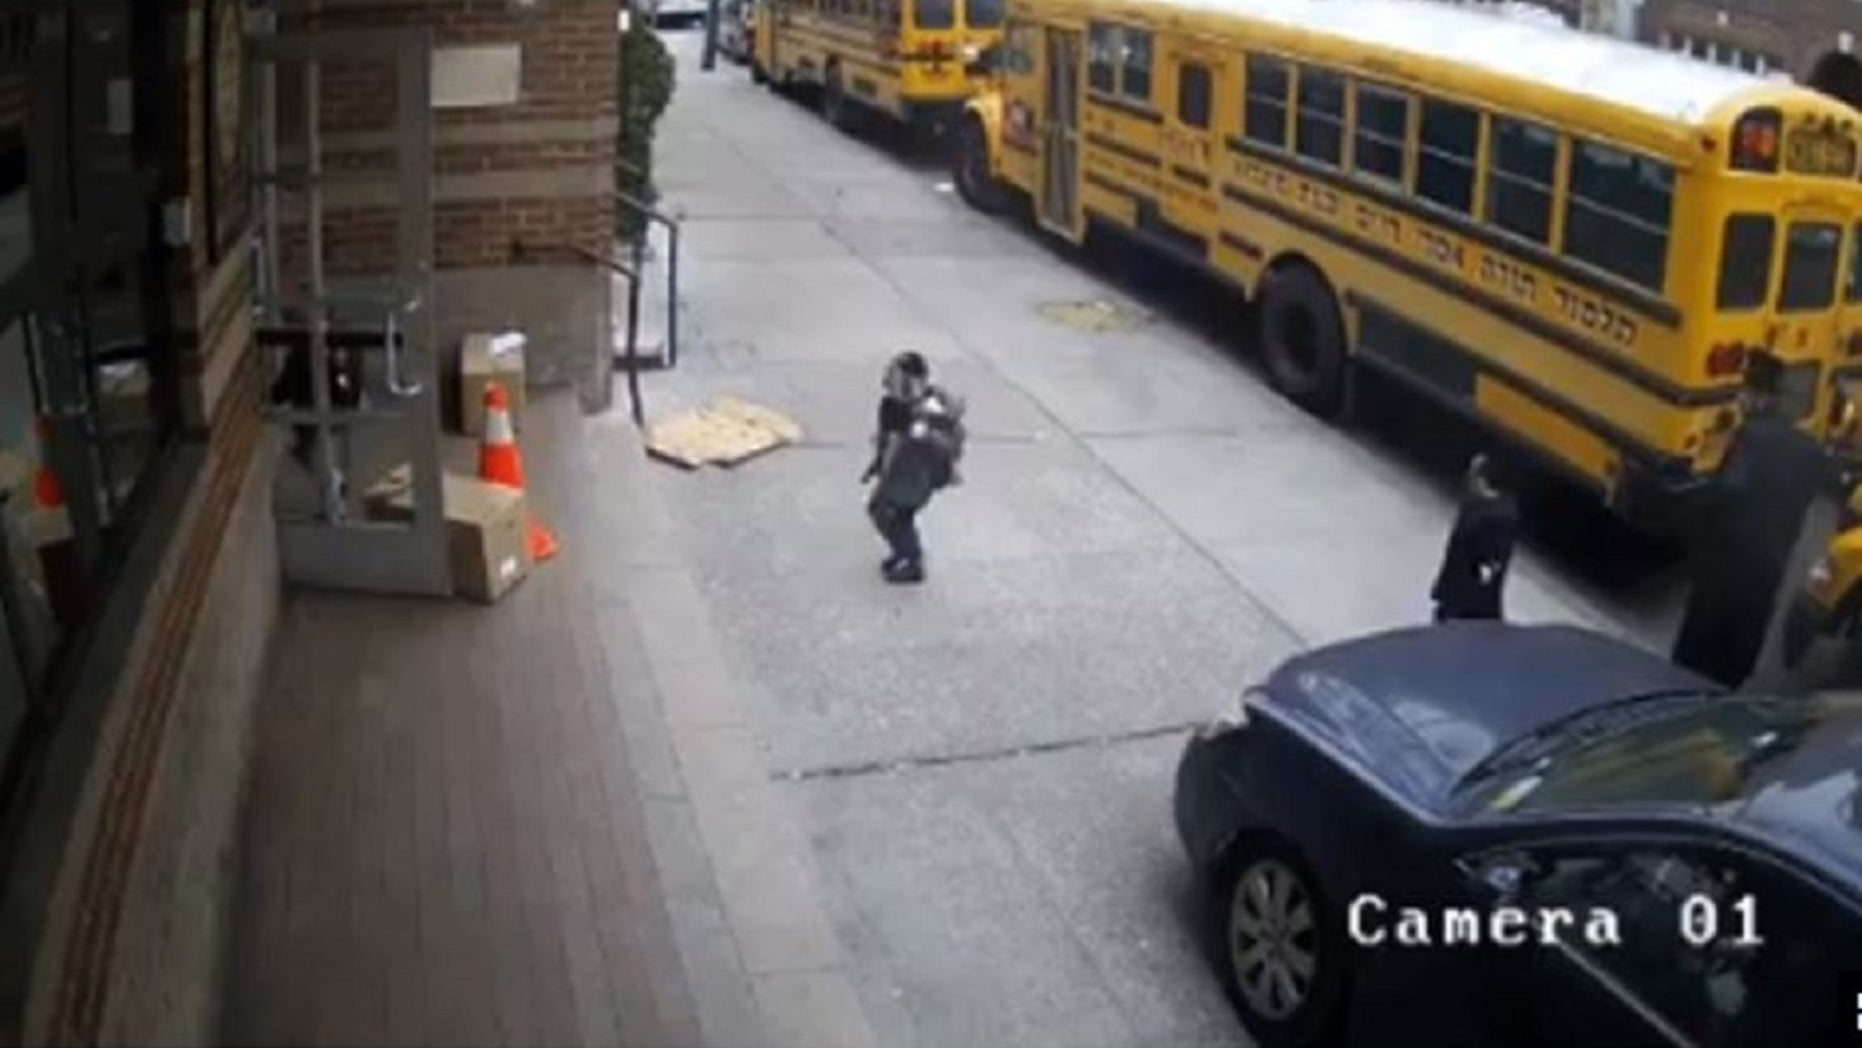 Former NY State Assemblyman Dov Hikind released video of what appears to be a driver trying to get around several parked school buses by driving onto the sidewalk.